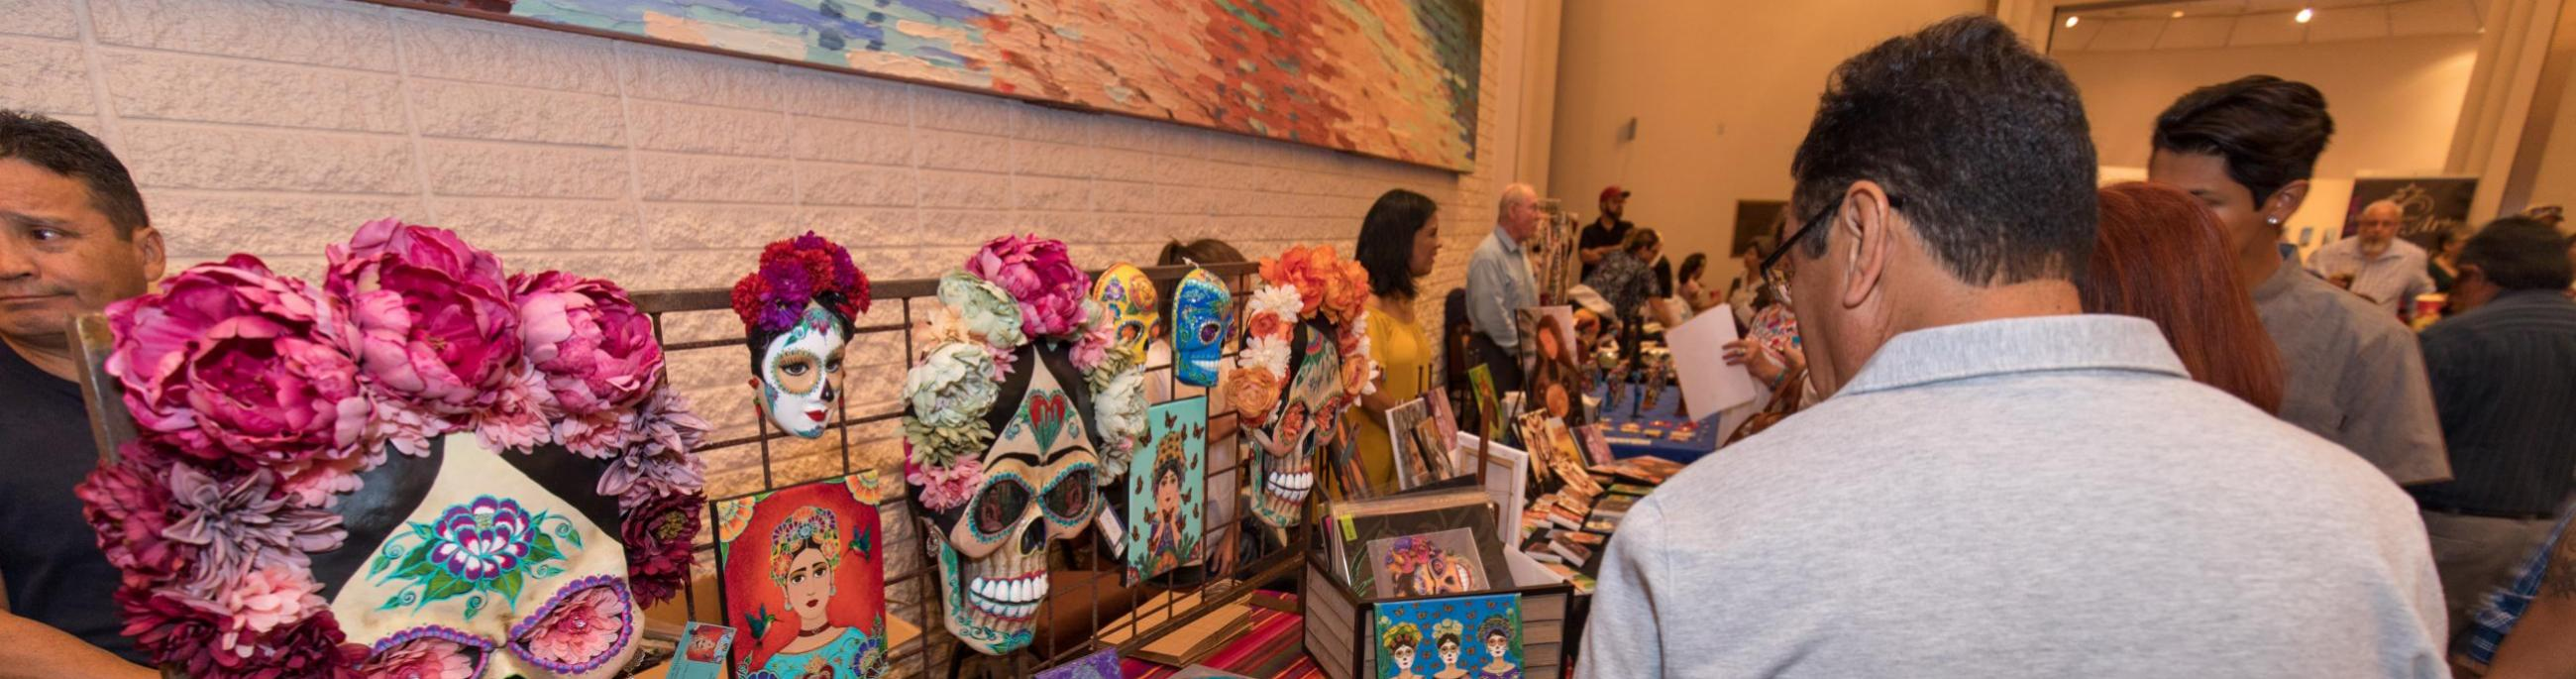 Chandler Center for the Arts is proud to partner with these local, state and national agencies and organizations whose mission is to support and increase the arts in our community.